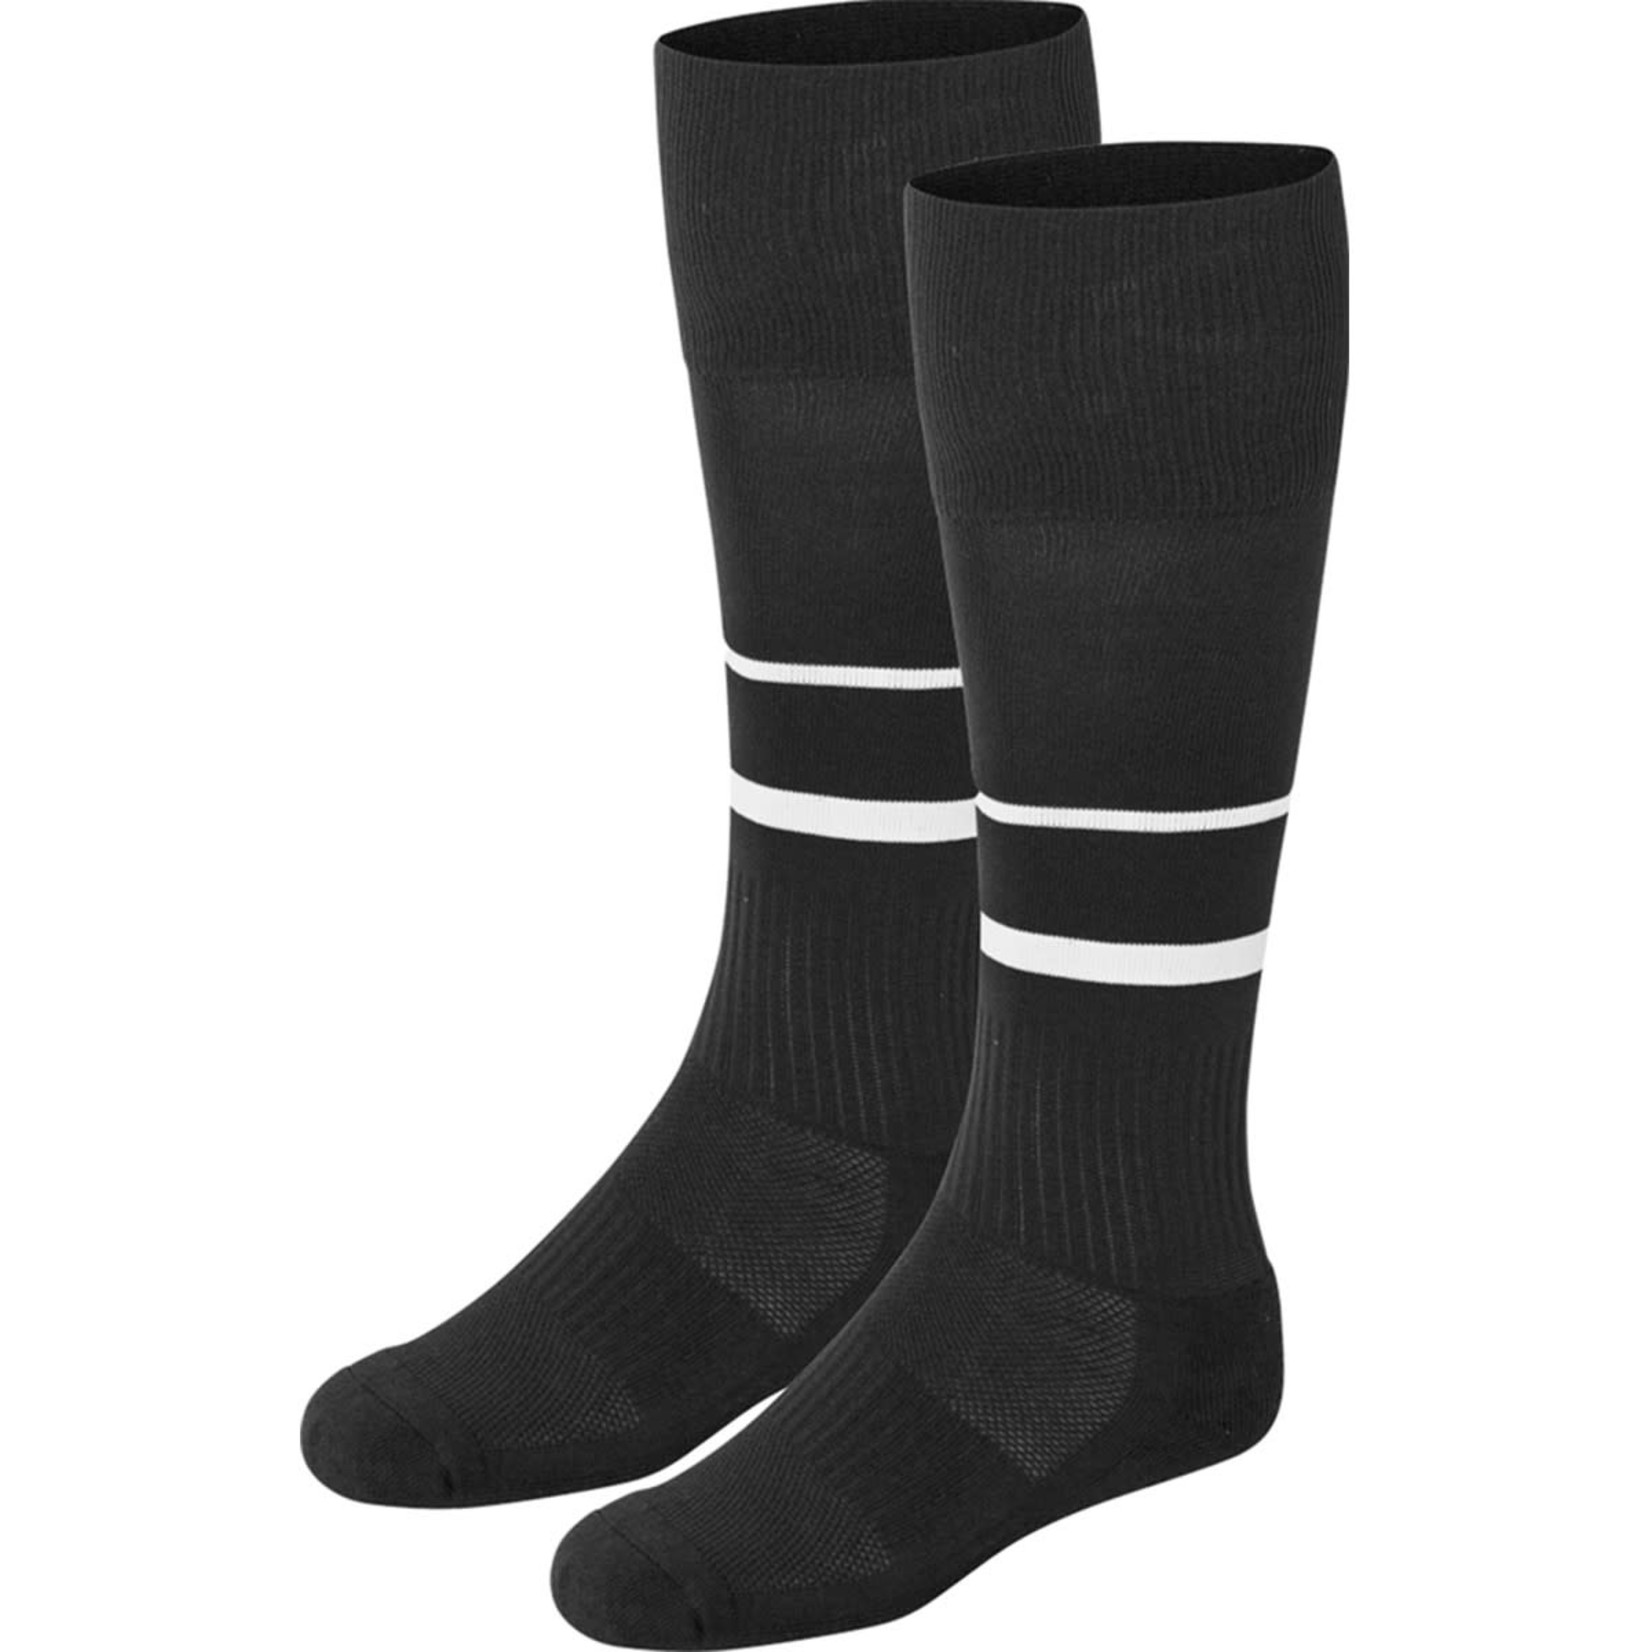 FINAL DECISION CLASSIC 2 REFEREE SOCKS